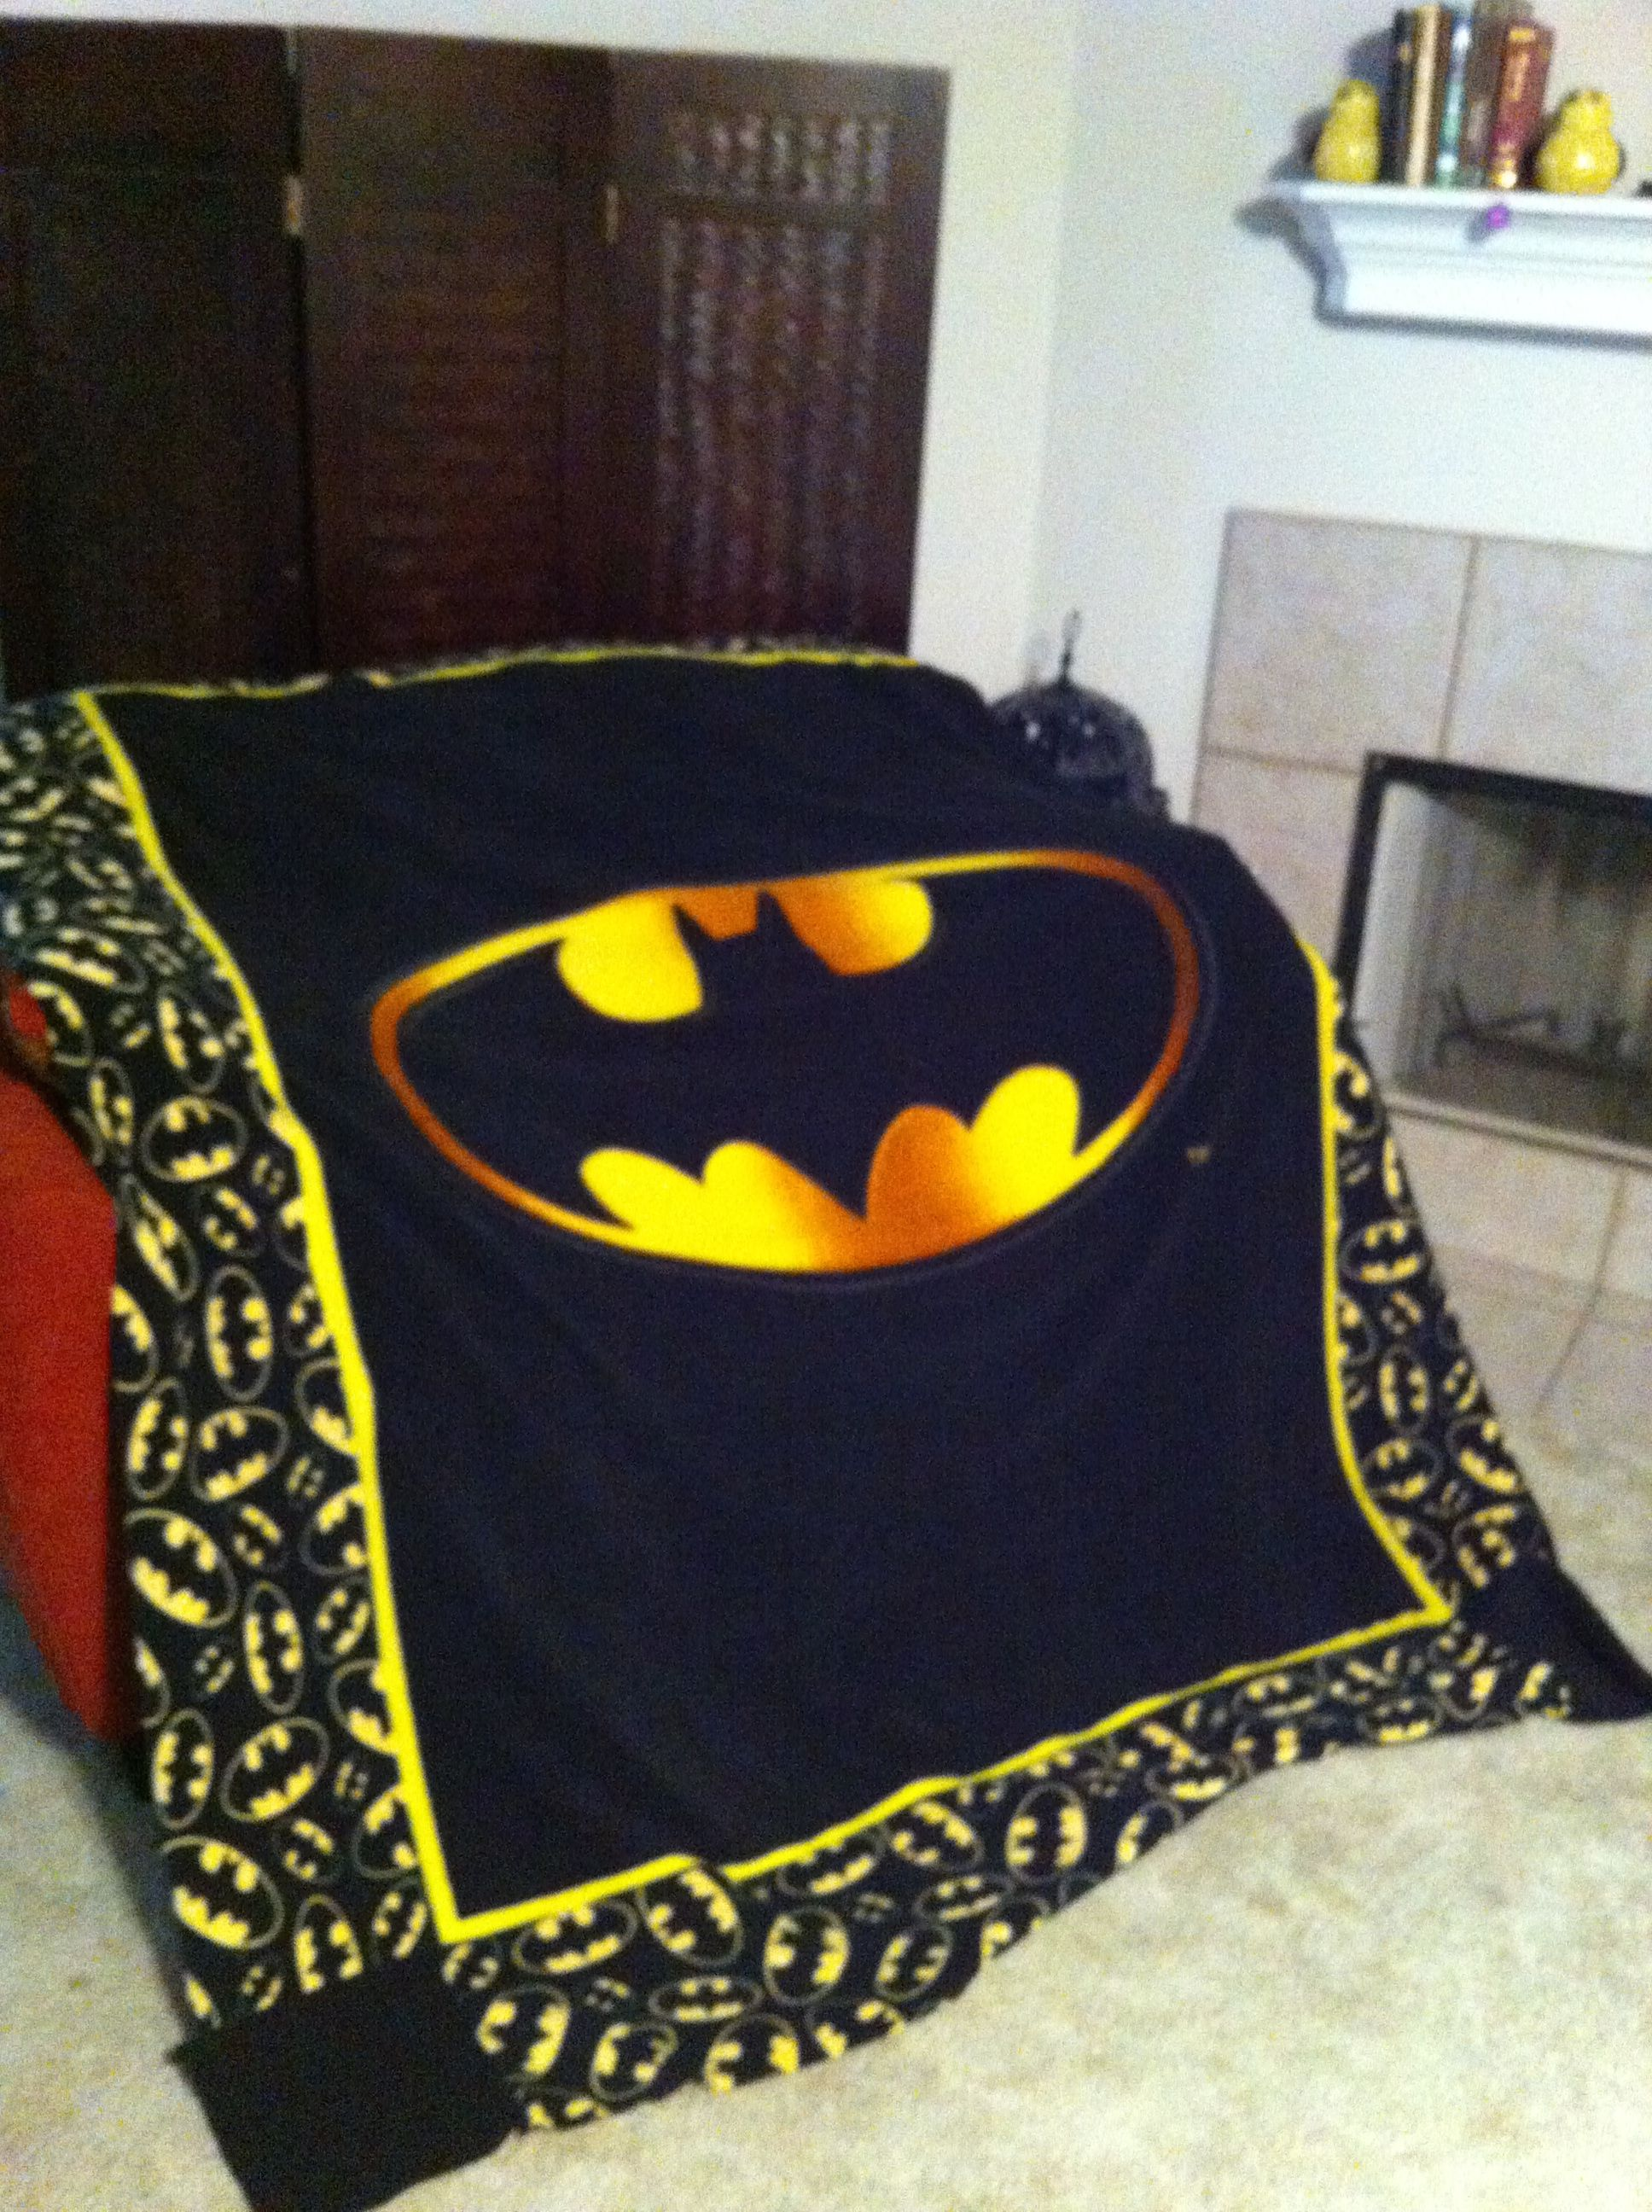 Batman Throw Blanket Batman Stuff I Want Pinterest